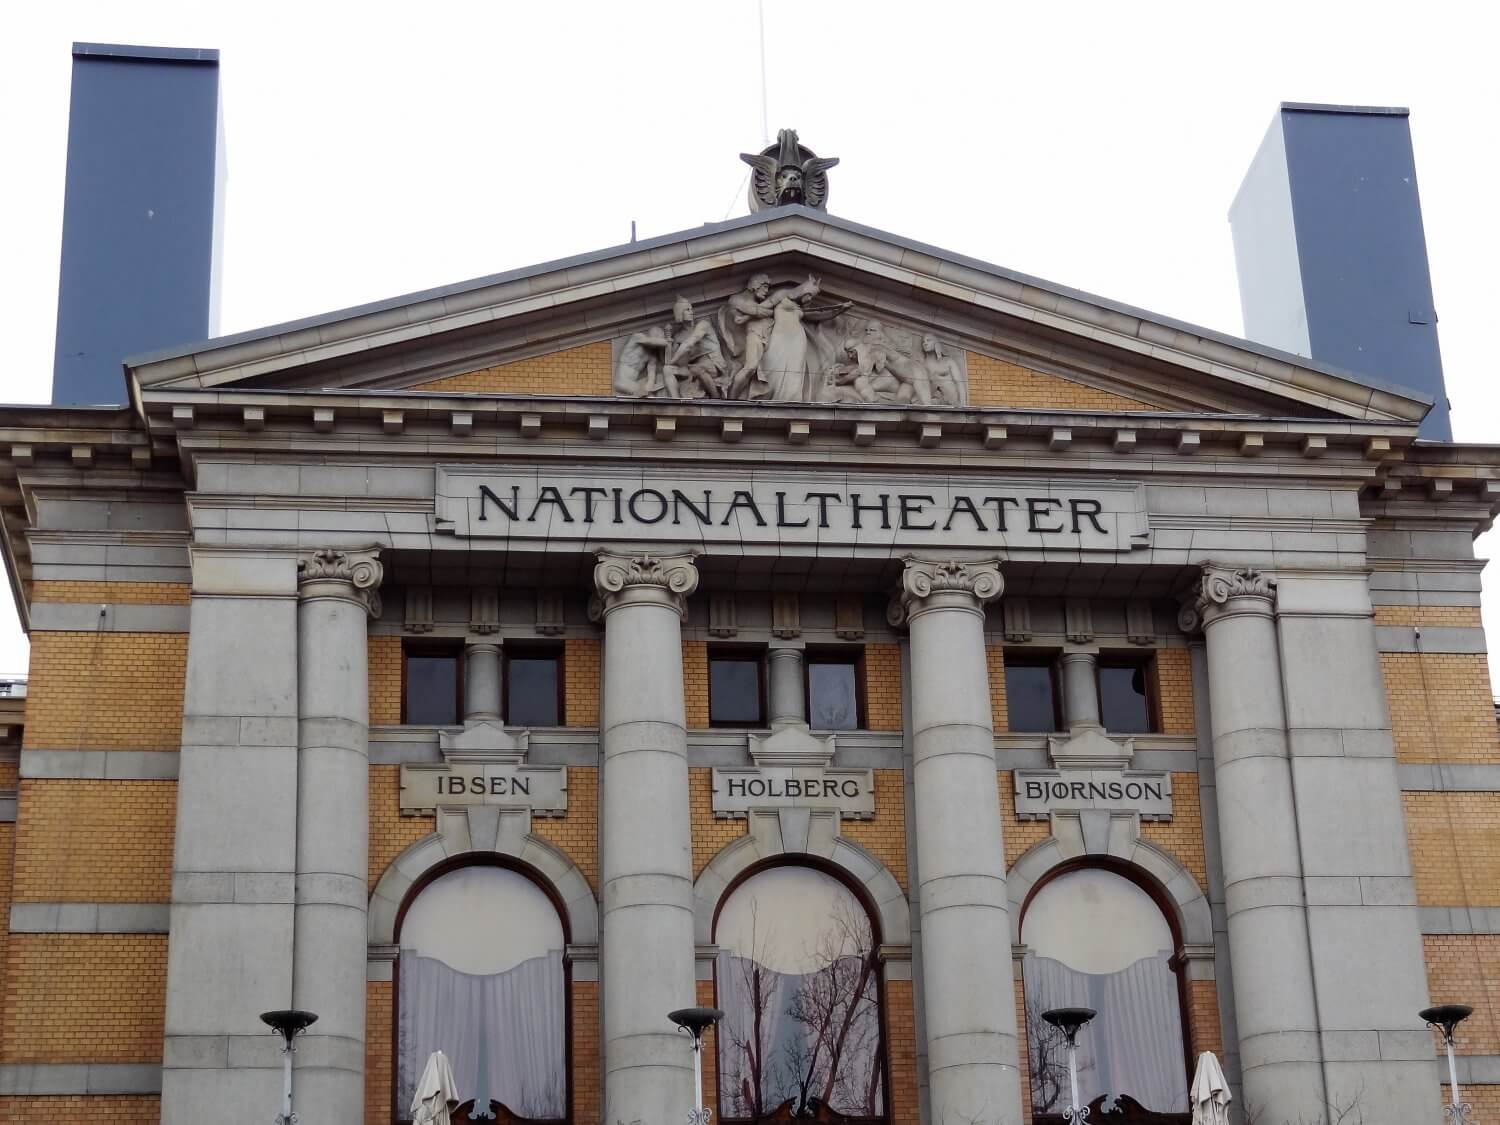 Oslo Nationaal Theater